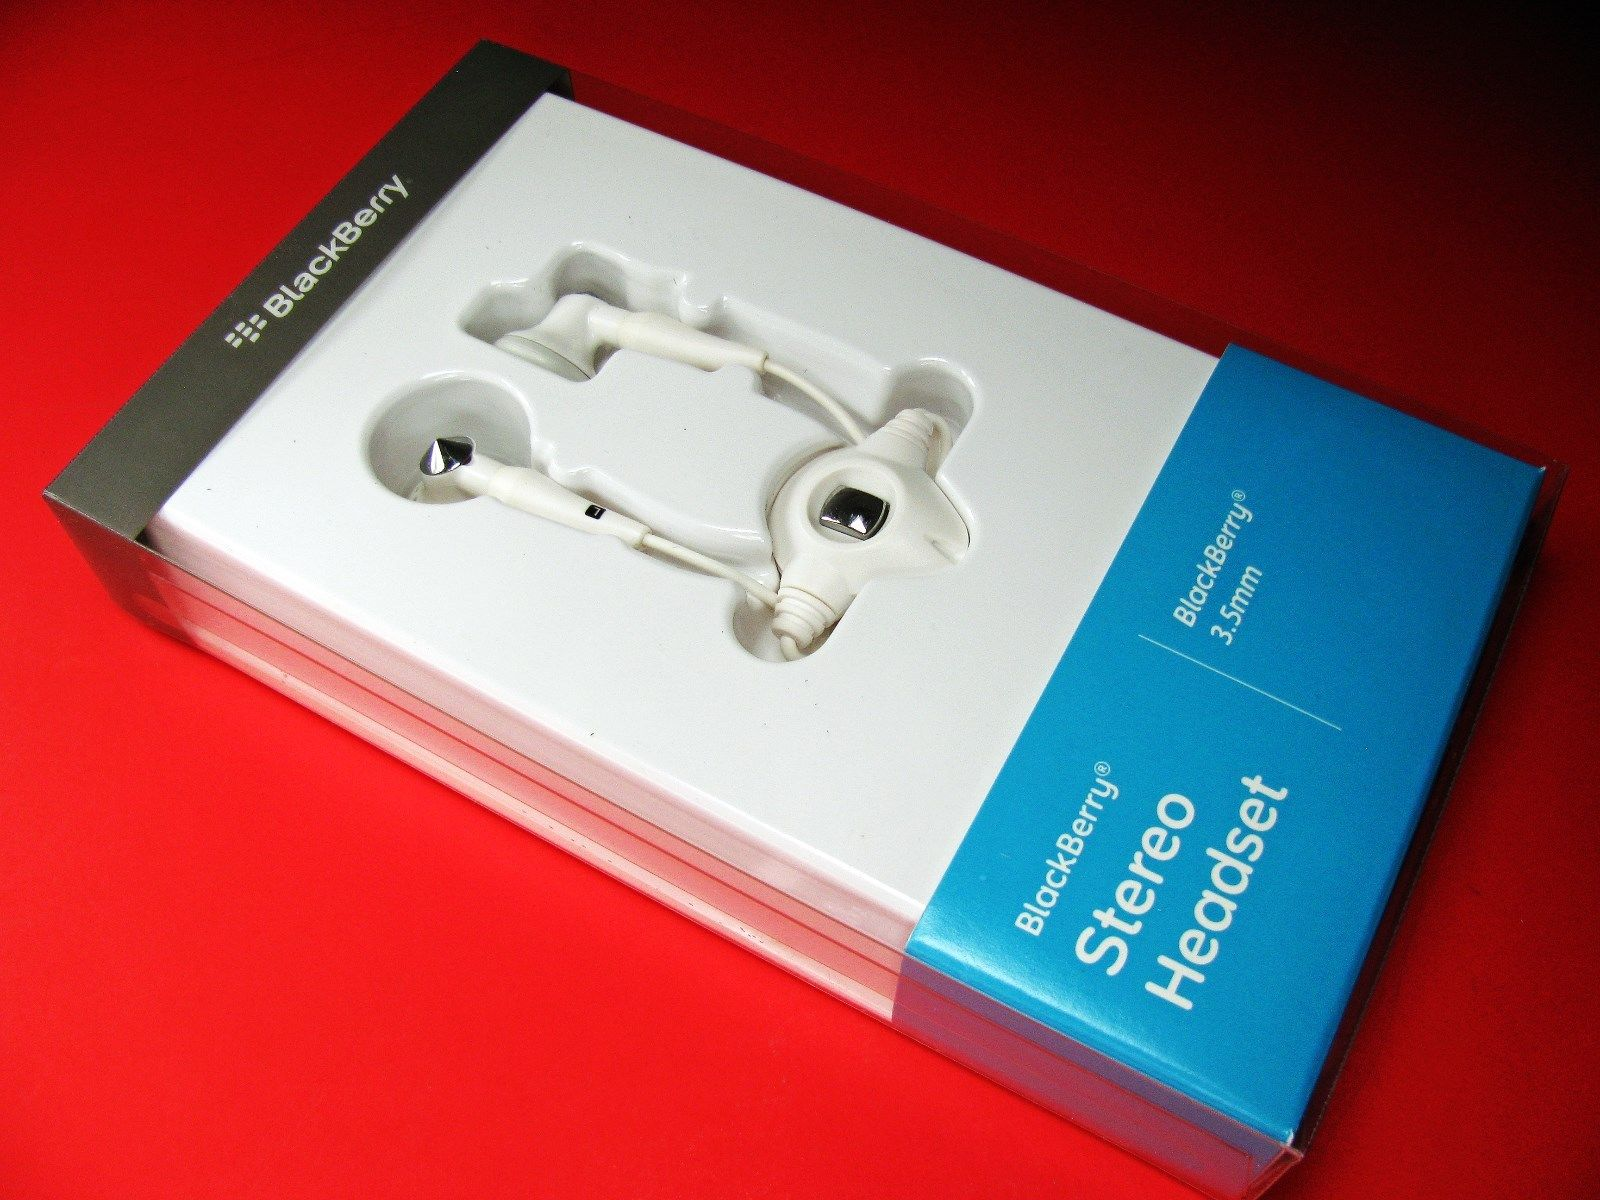 Blackberry Stereo Headset on/off CURVE 9315 9320 9310 9380 9360 9350 9370...